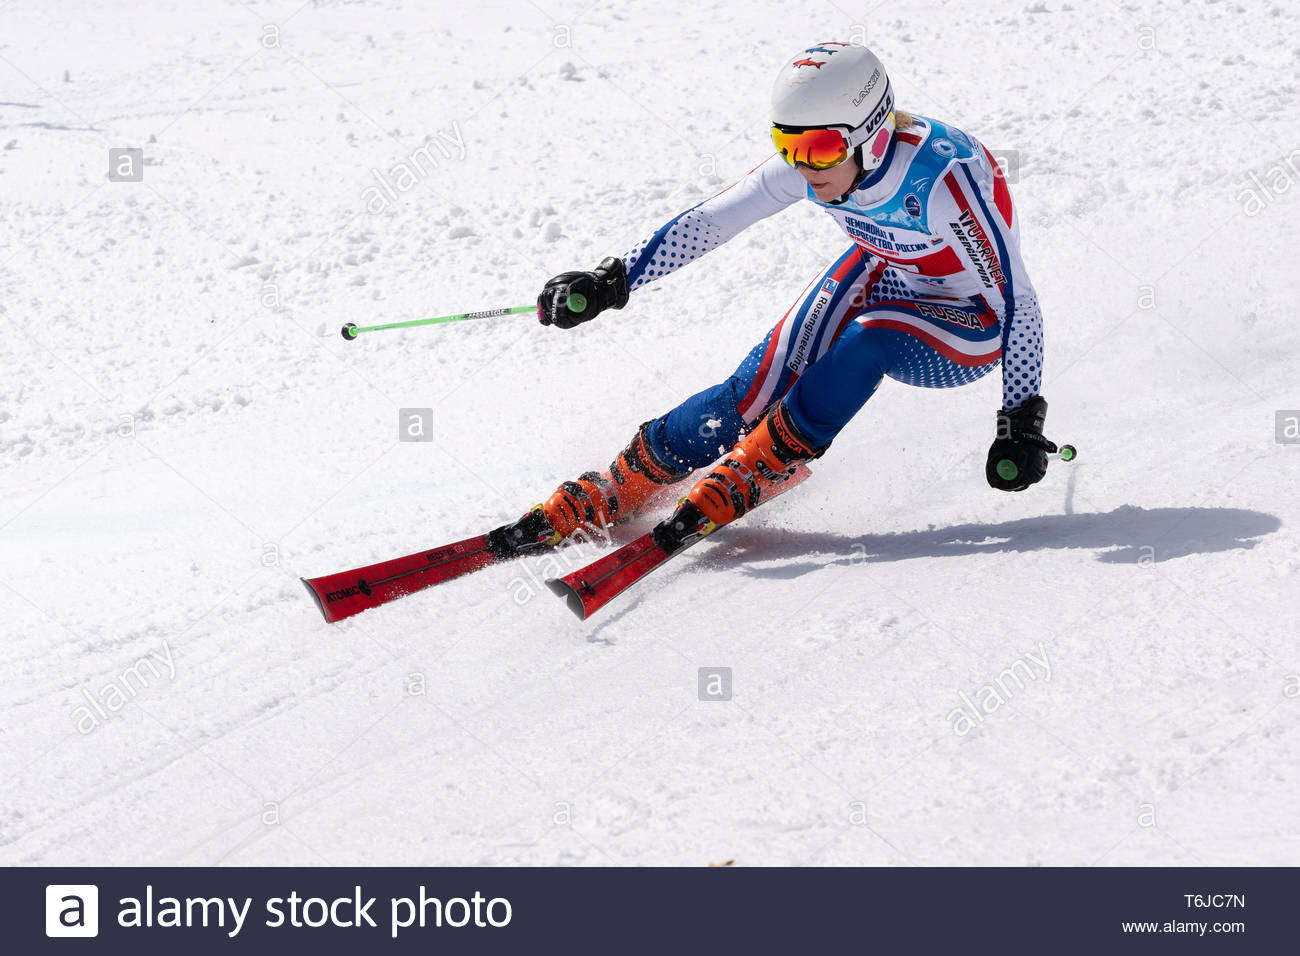 KAMCHATKA PENINSULA, RUSSIAN FEDERATION - APR 1, 2019: Russian Women's Alpine Skiing Championship giant slalom. Mountain skier Ekaterina Perfilova (Kr - Stock Image